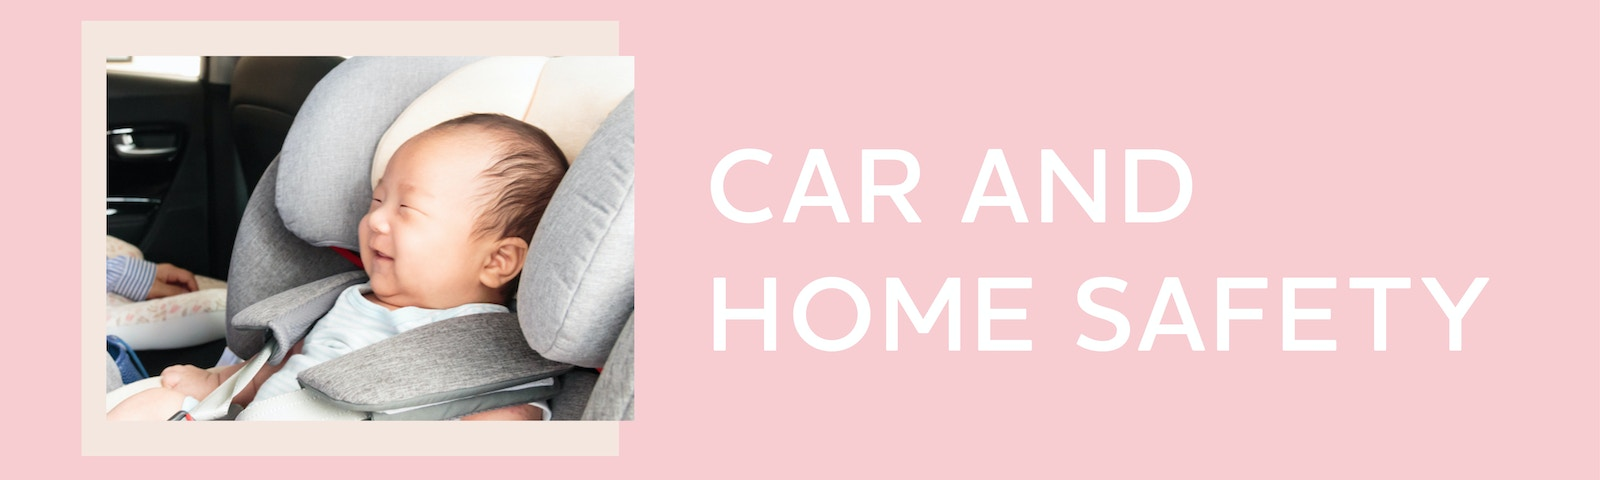 Image of a baby in a car seat with text that reads Car and home safety